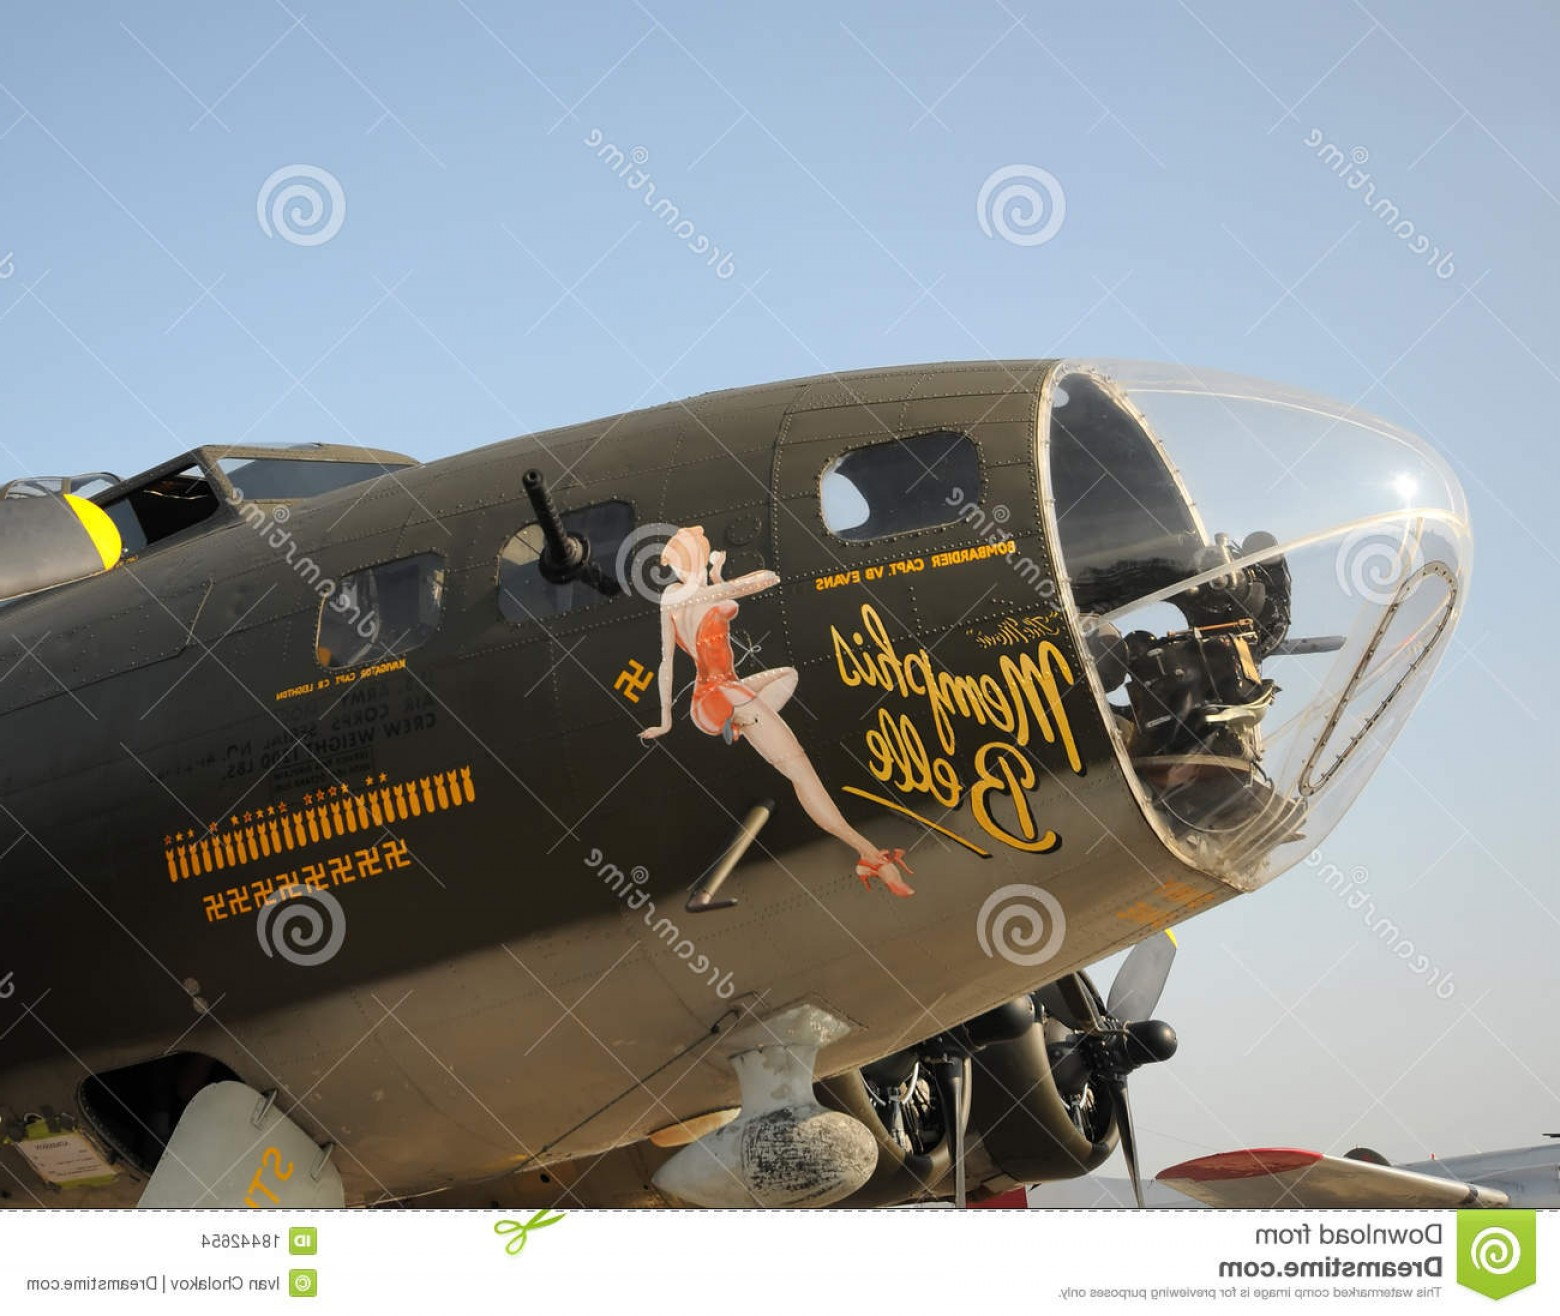 Vectors Fortress Flying: Stock Images Memphis Belle Flying Fortress Bomber Image